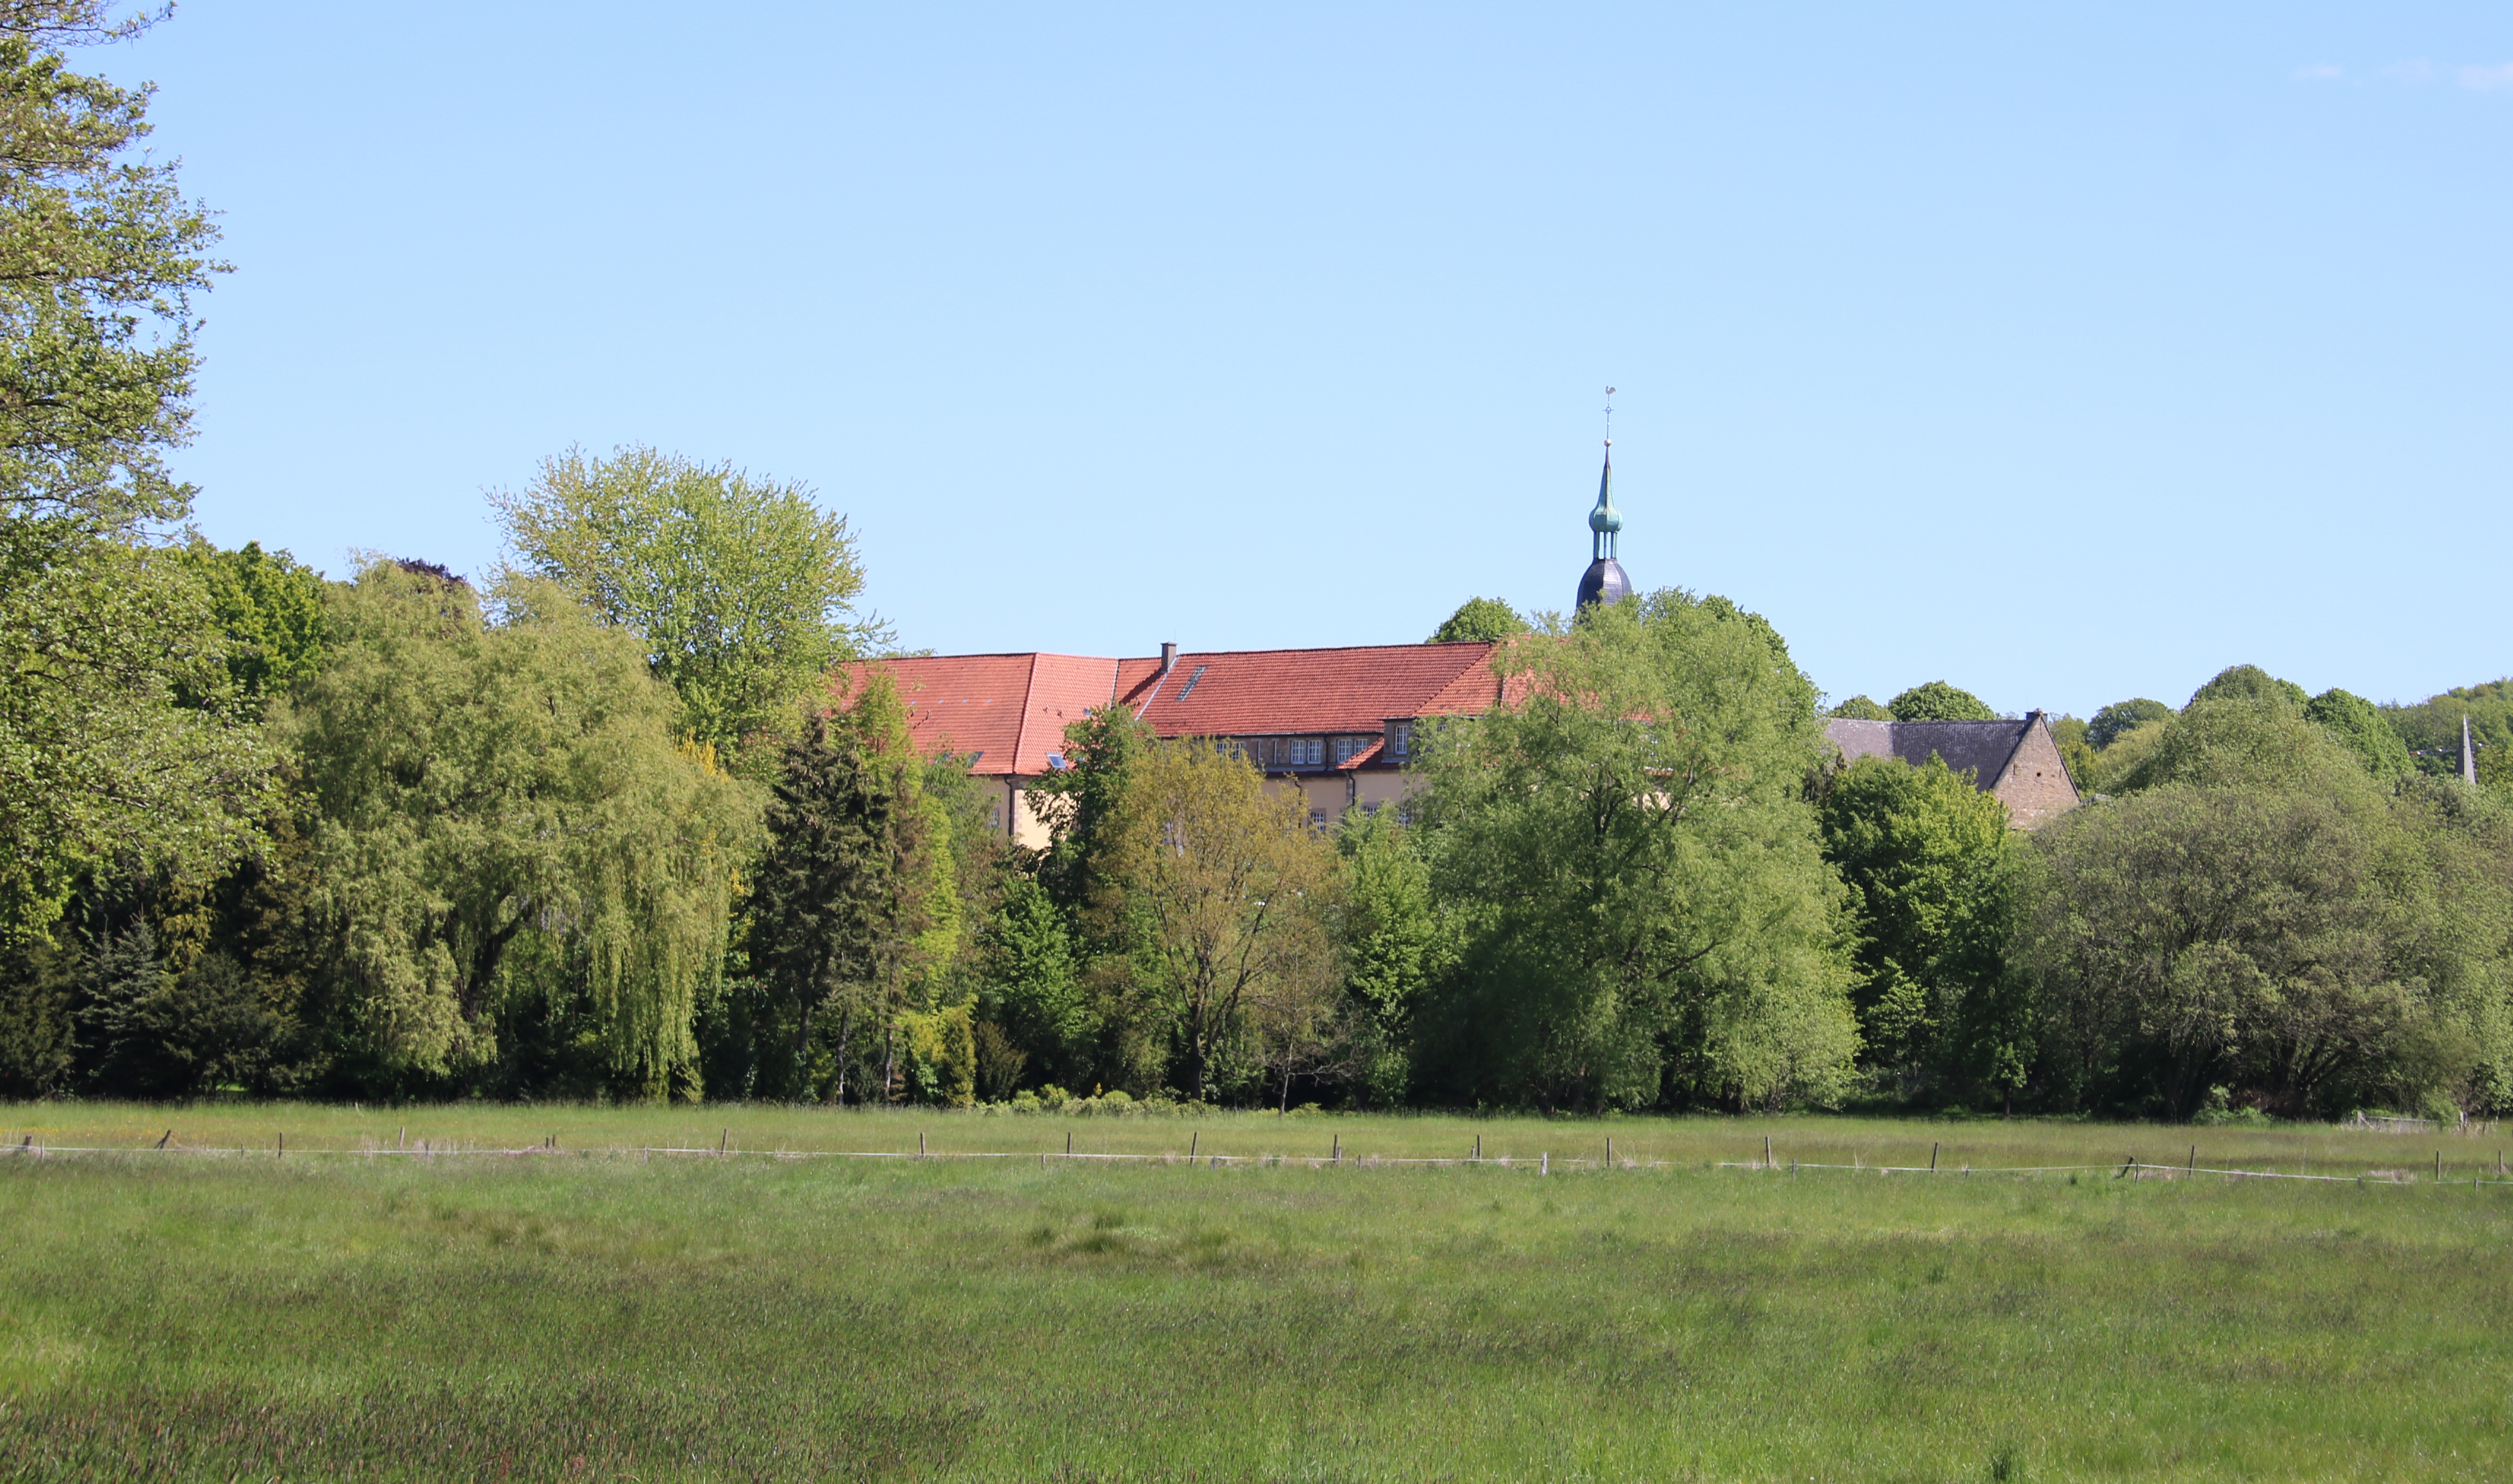 Kloster Oesede